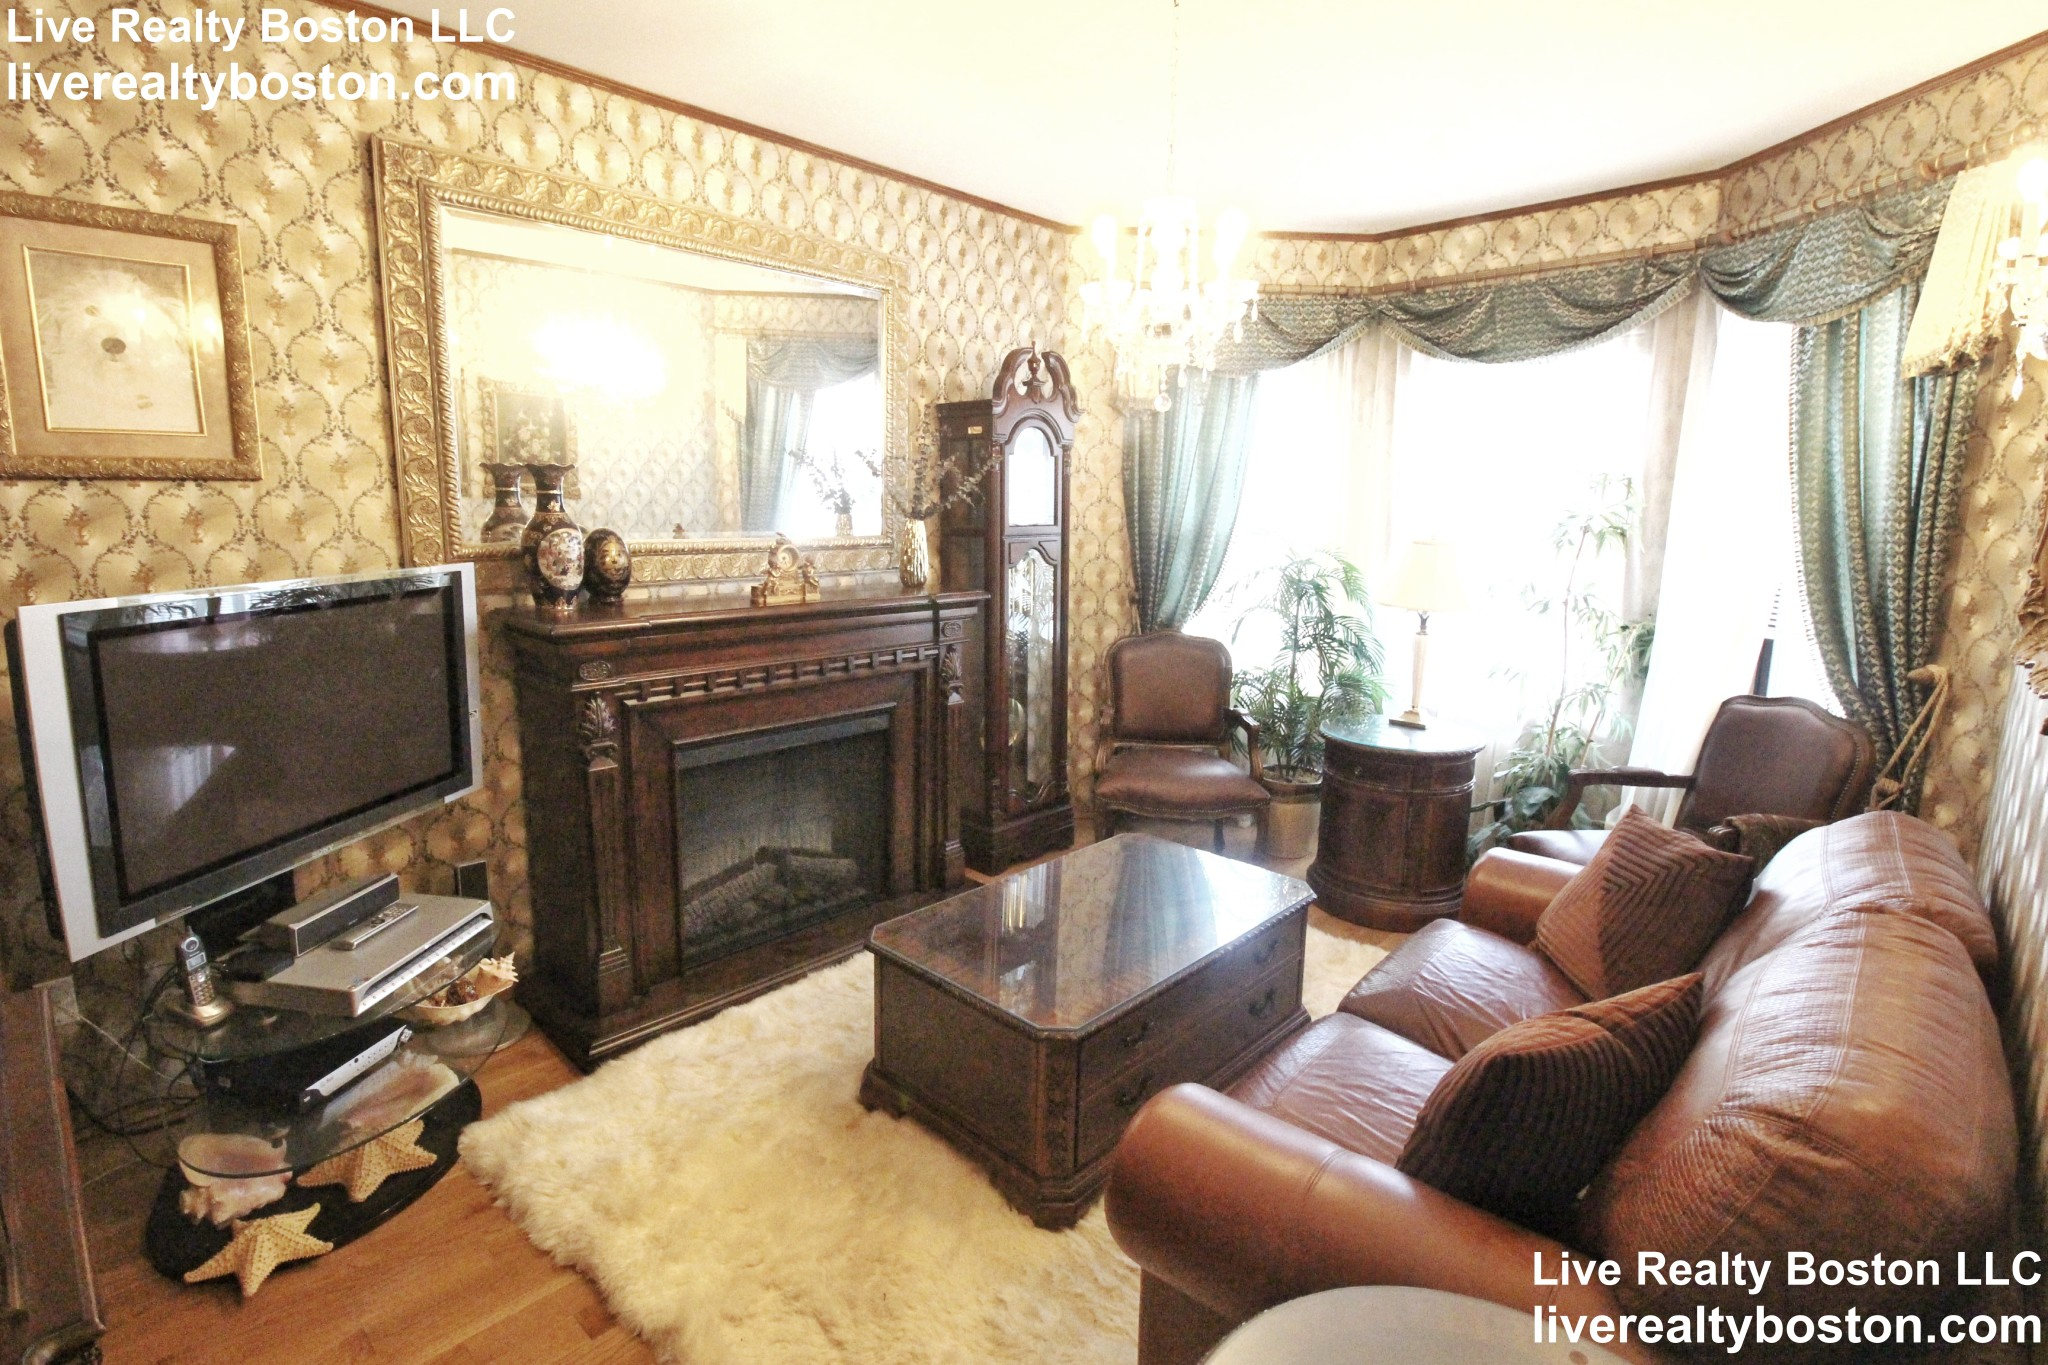 Pictures of  property for rent on Quint Ave., Boston, MA 02134